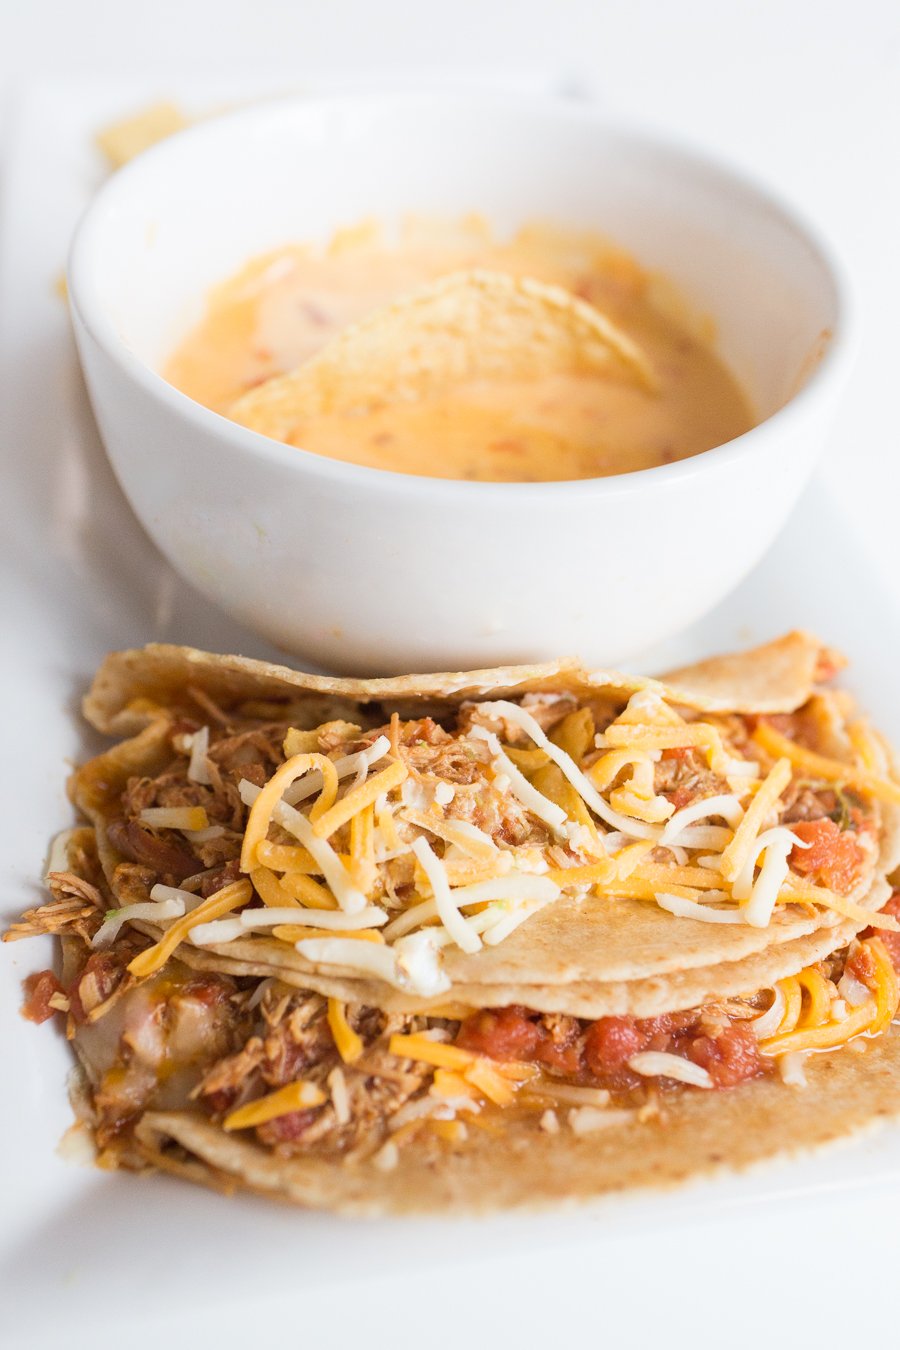 Two Minute Crockpot Chicken Ranch Tacos-1 soft tacos on a long white plate with a bowl of queso and chips